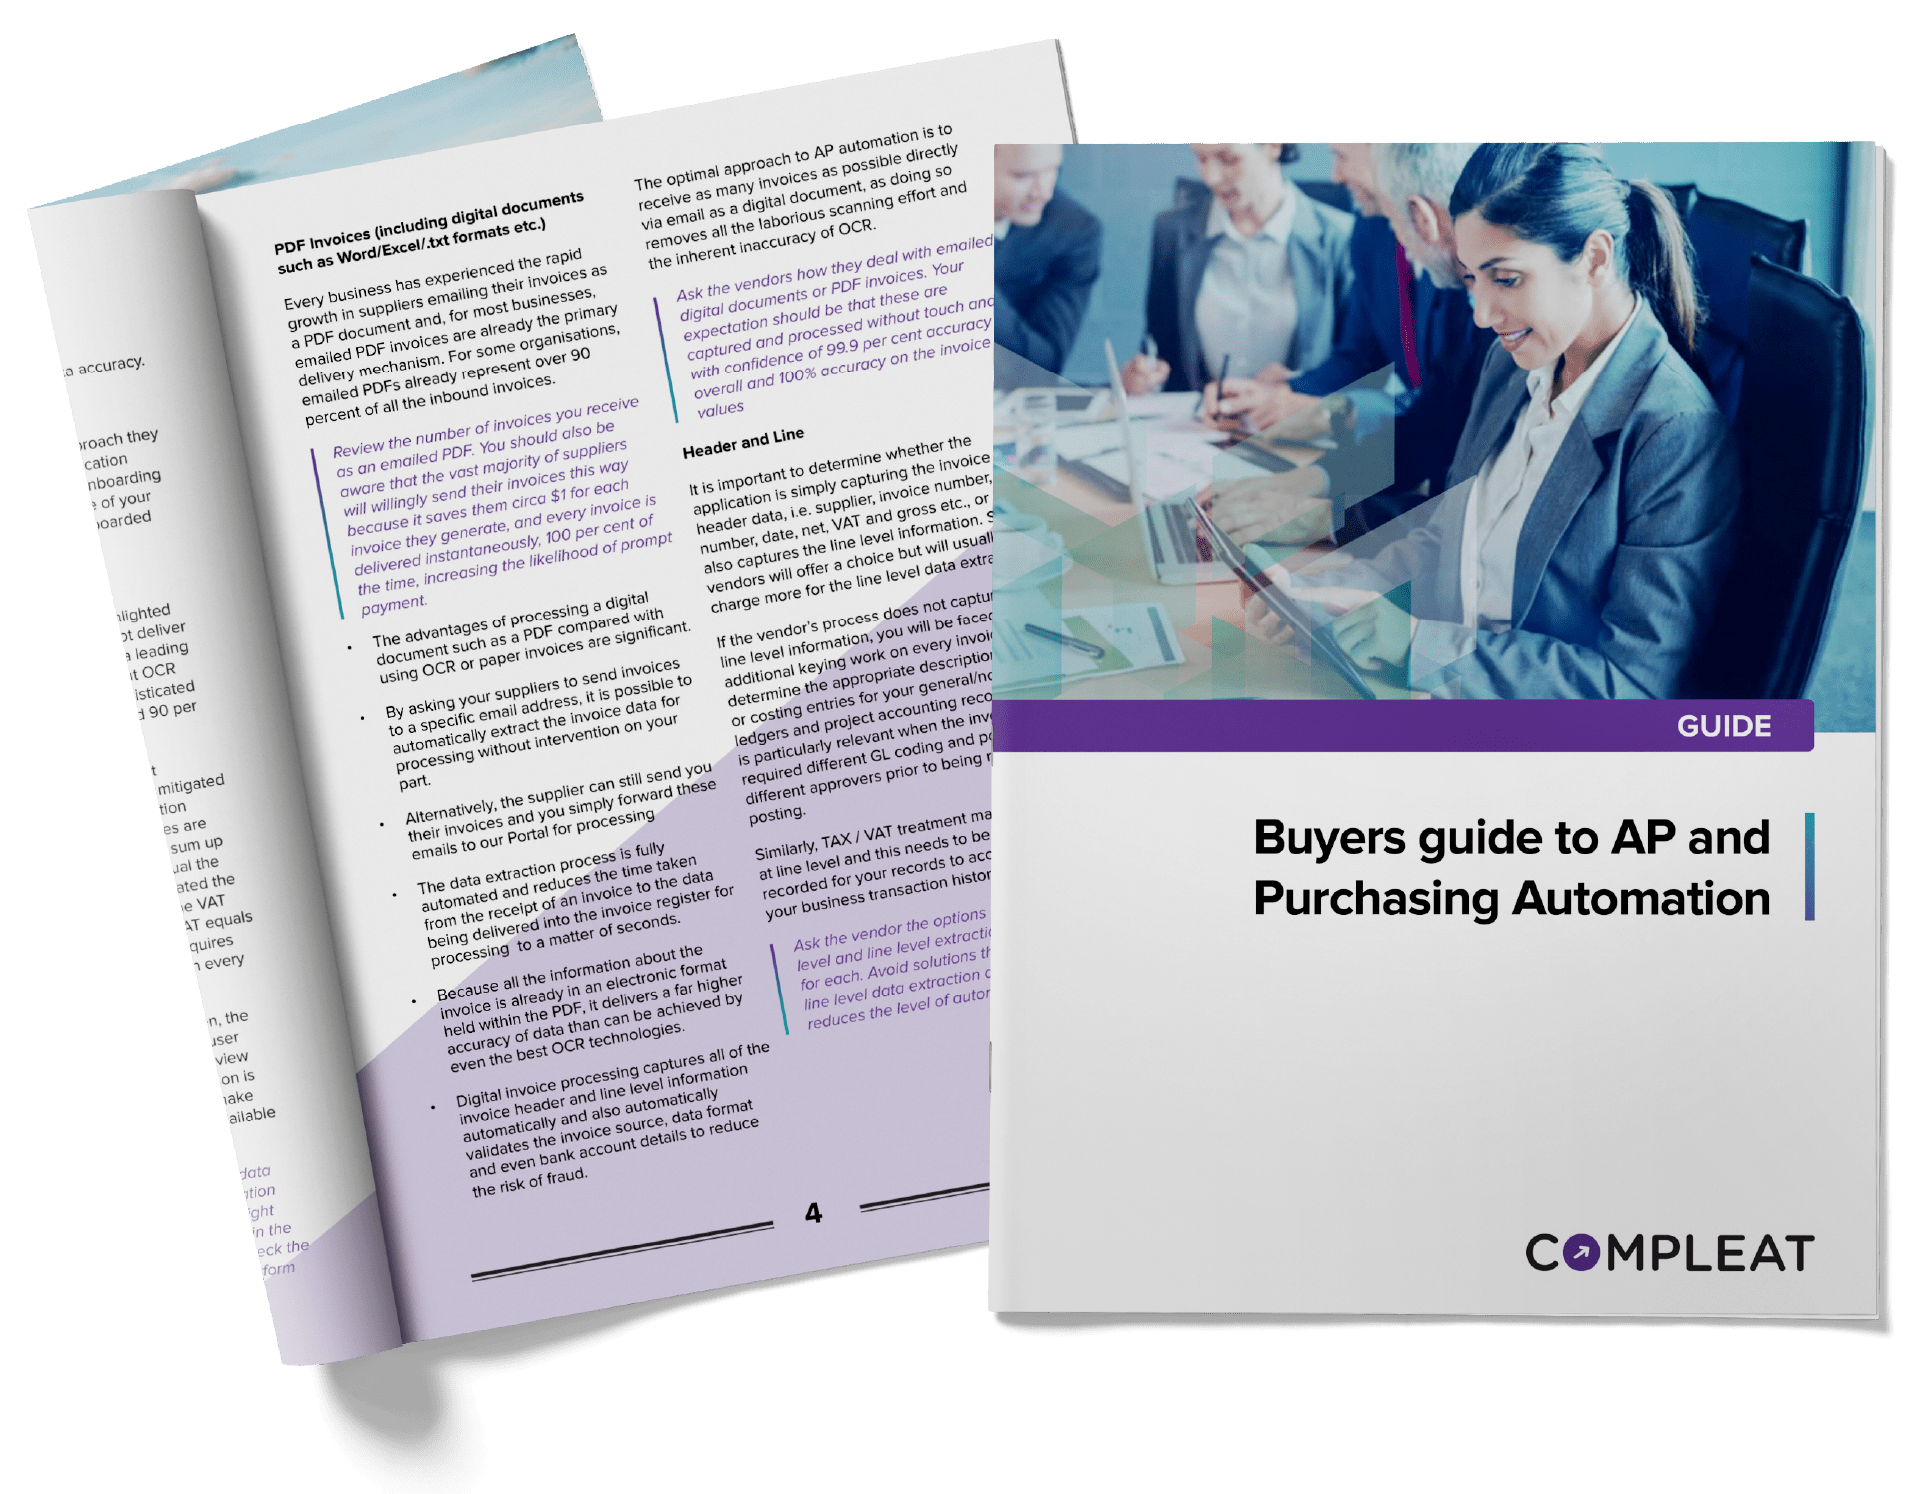 Buyers guide to AP and Purchasing Automation thumbnail